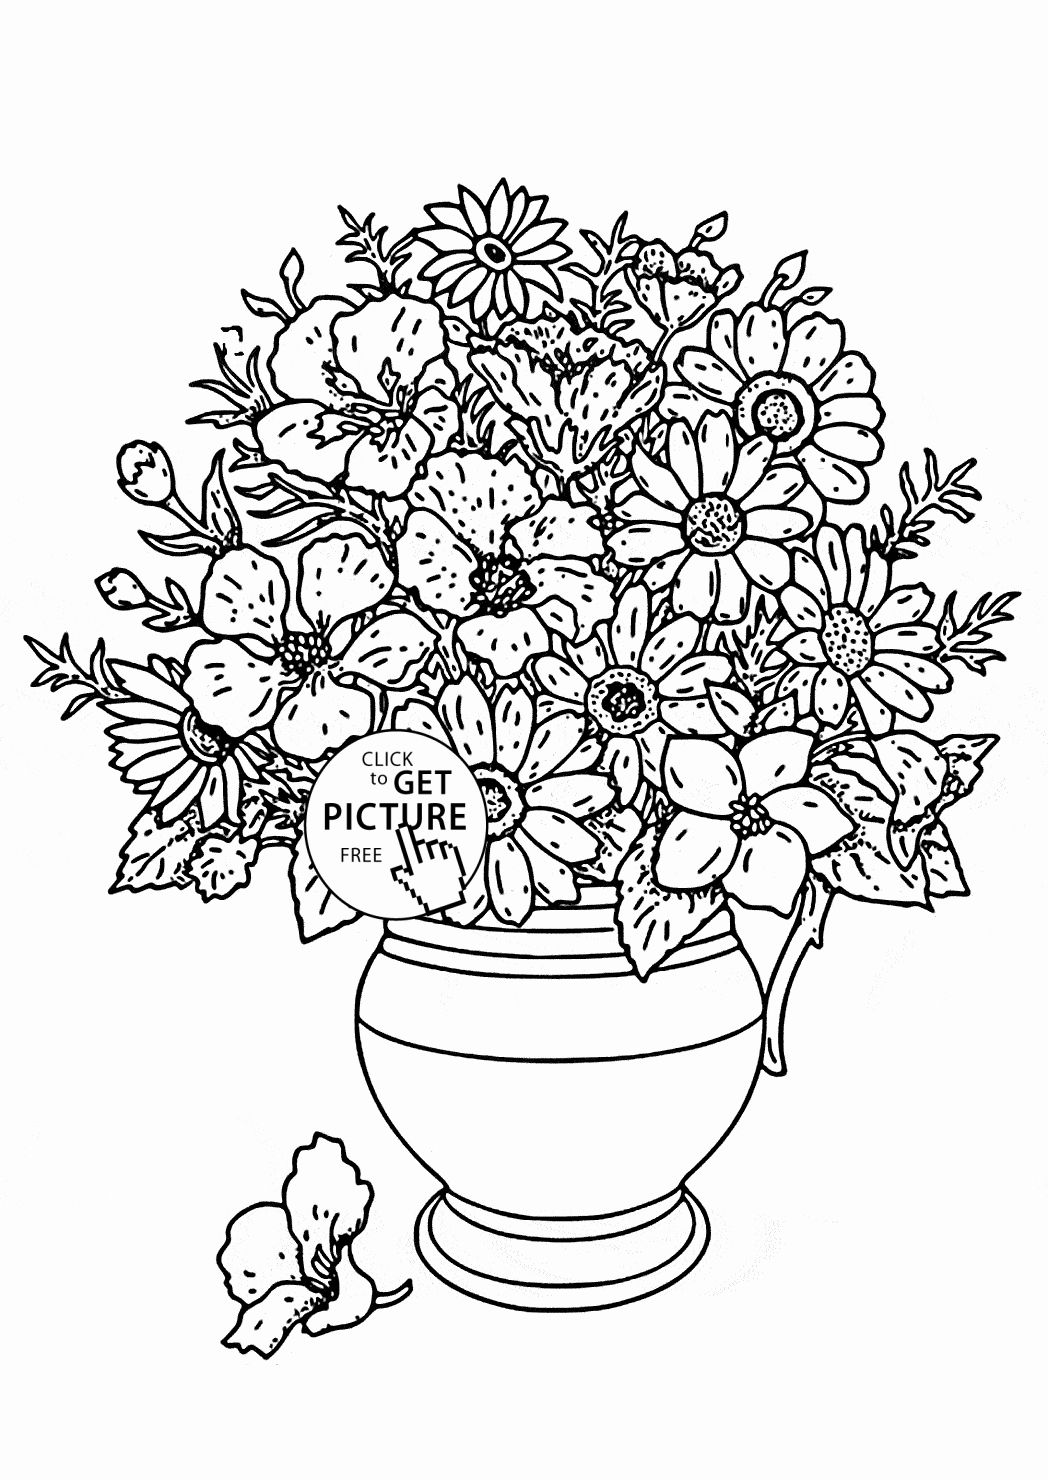 Flower Bouquet Coloring Page Lovely 42 Bouquet Flowers Coloring Page Flower Bouque In 2020 Printable Flower Coloring Pages Flower Coloring Pages Flower Coloring Sheets